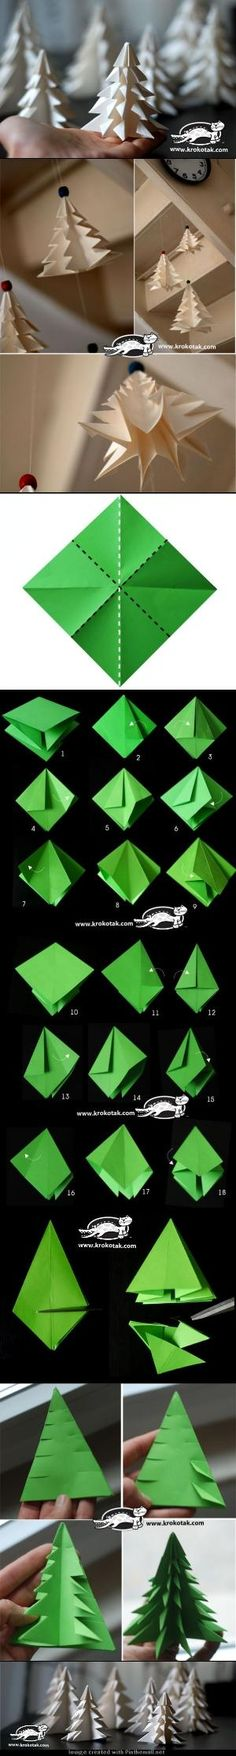 How to fold (and cut) a Christmas tree #origami #craft #paper by Cloud9